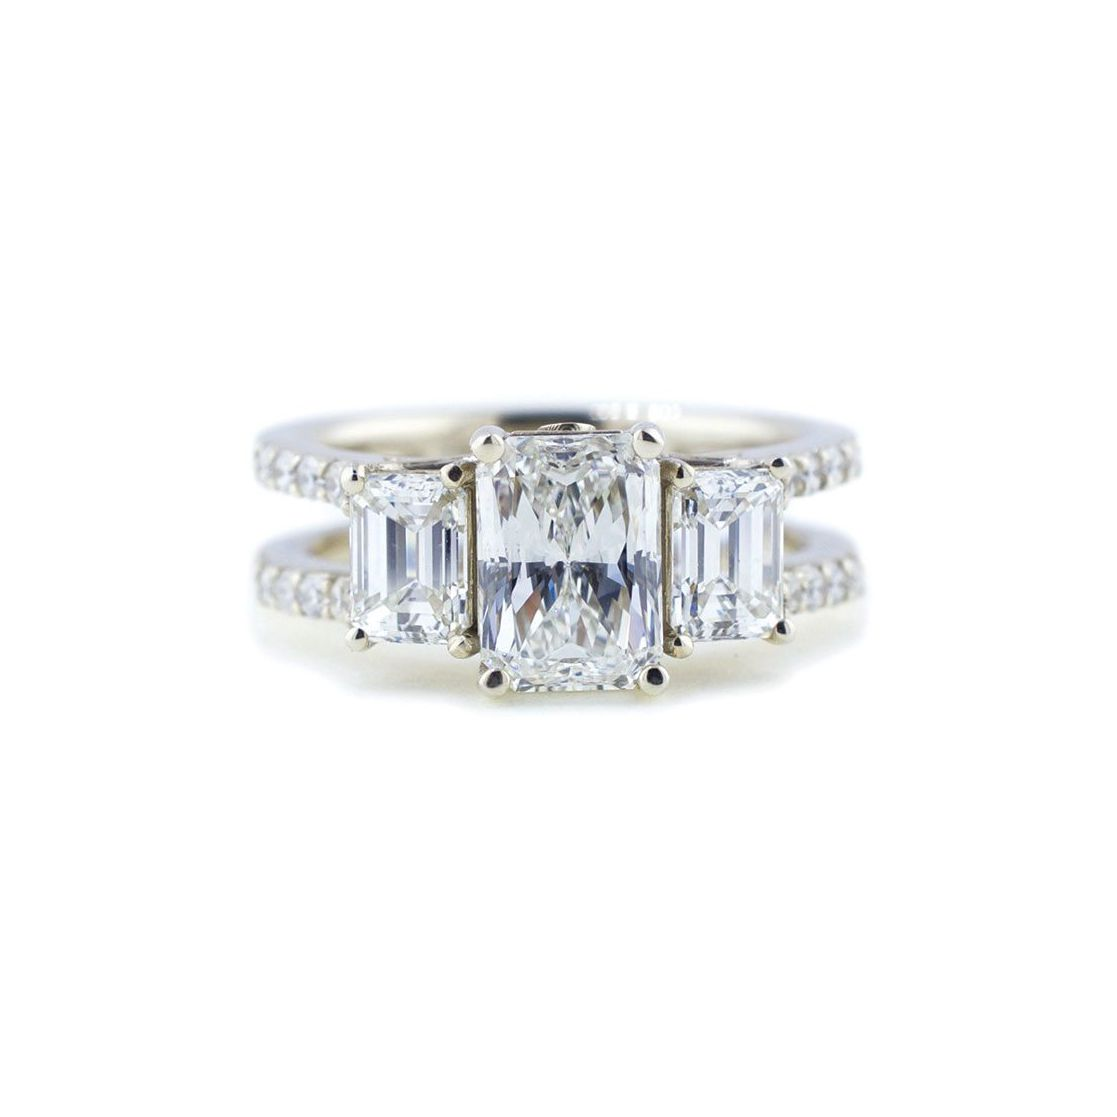 Abby Sparks Jewelry The Leah Three-Stone Double Band Diamond Ring